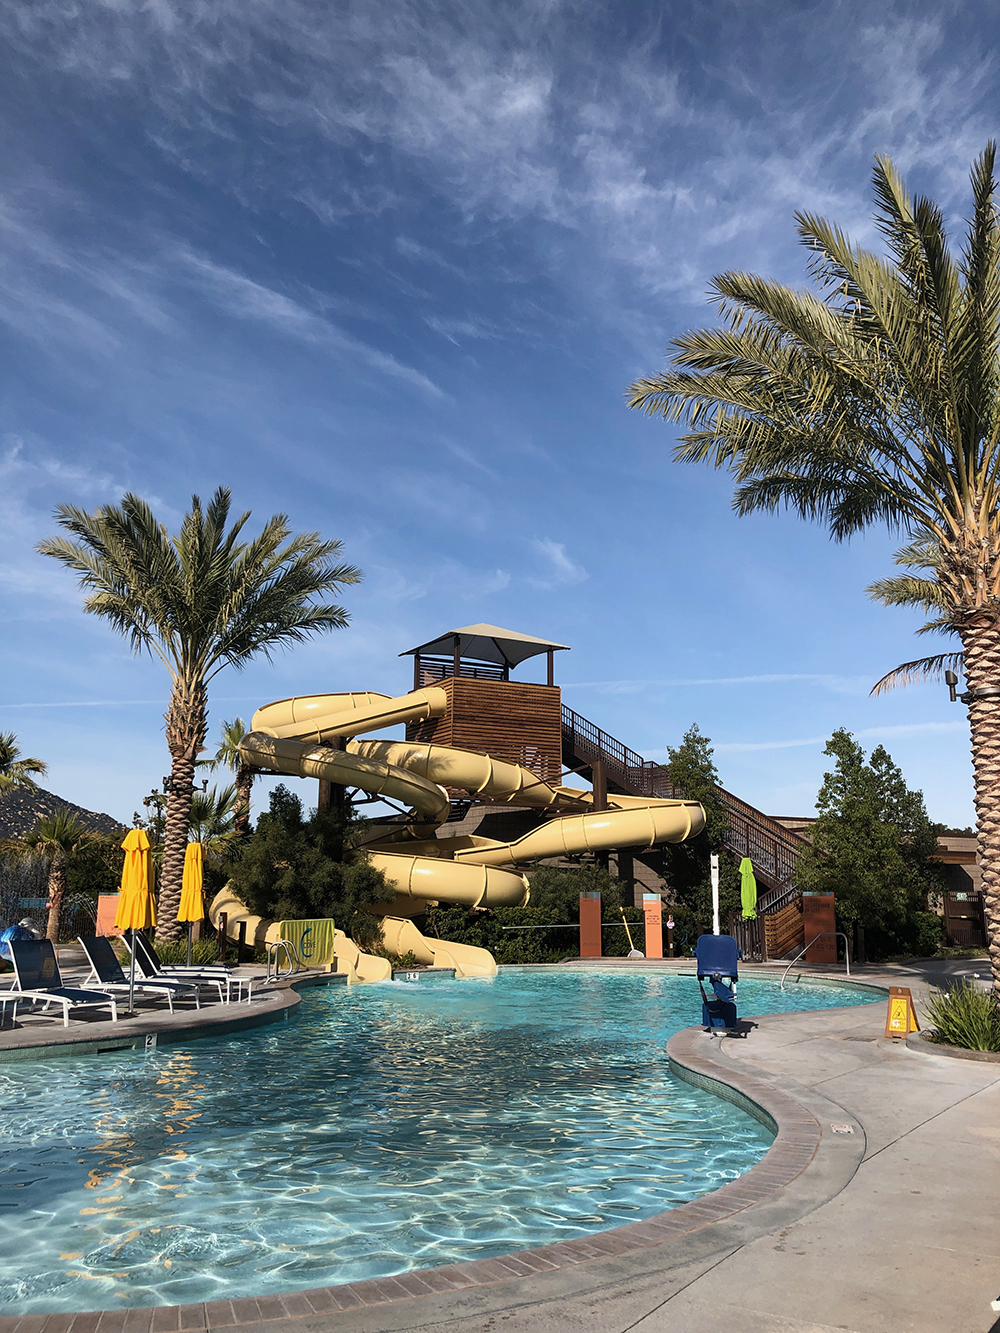 The Cove also has a Family Pool with two waterslides, a splash pad, and five spas.